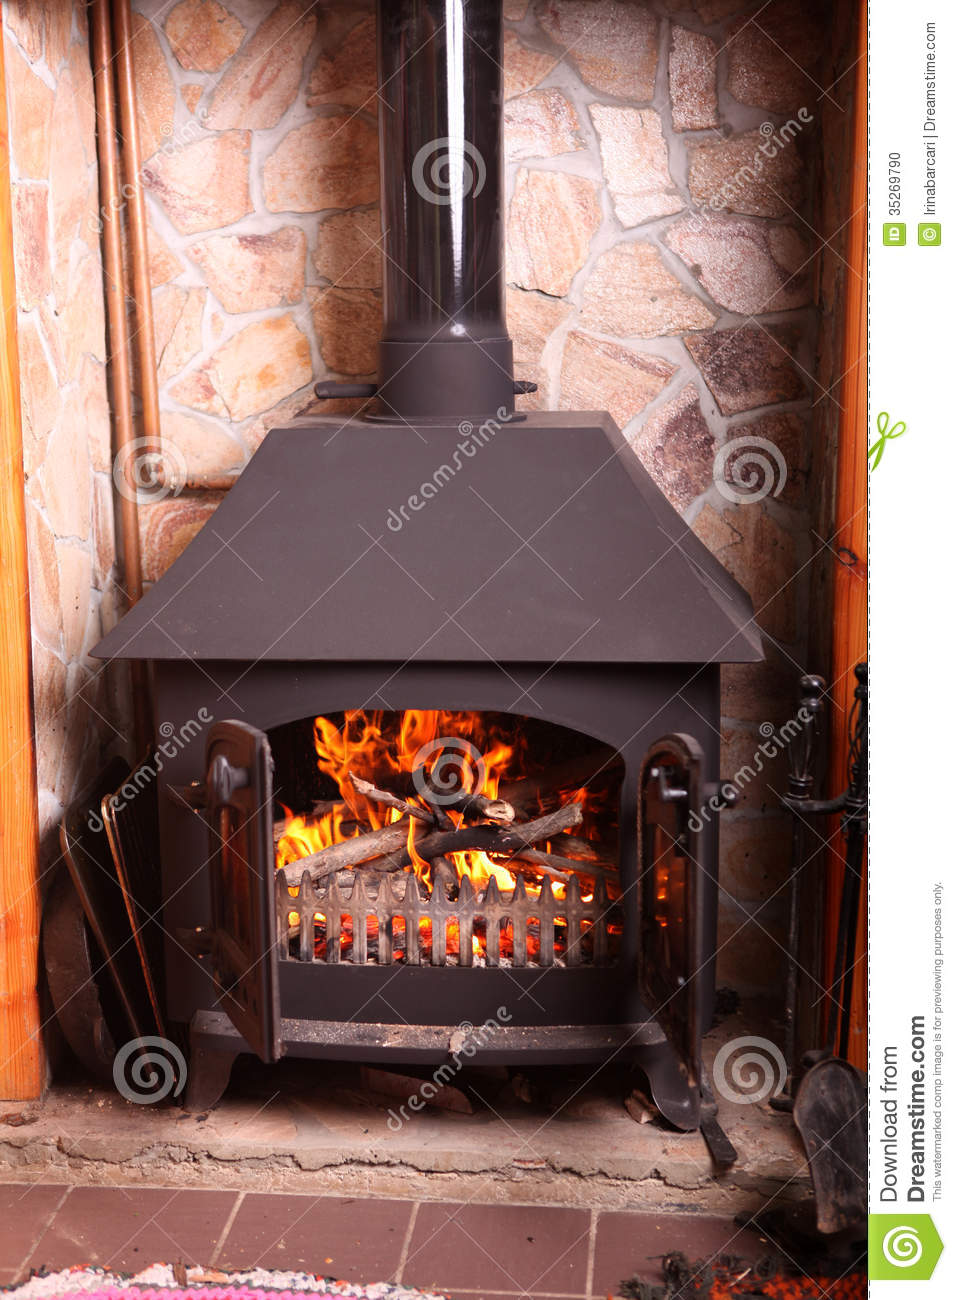 Old fashioned wood burning stove - Old Fashioned Wood Burning Stove Stock Photo - Image: 35269790